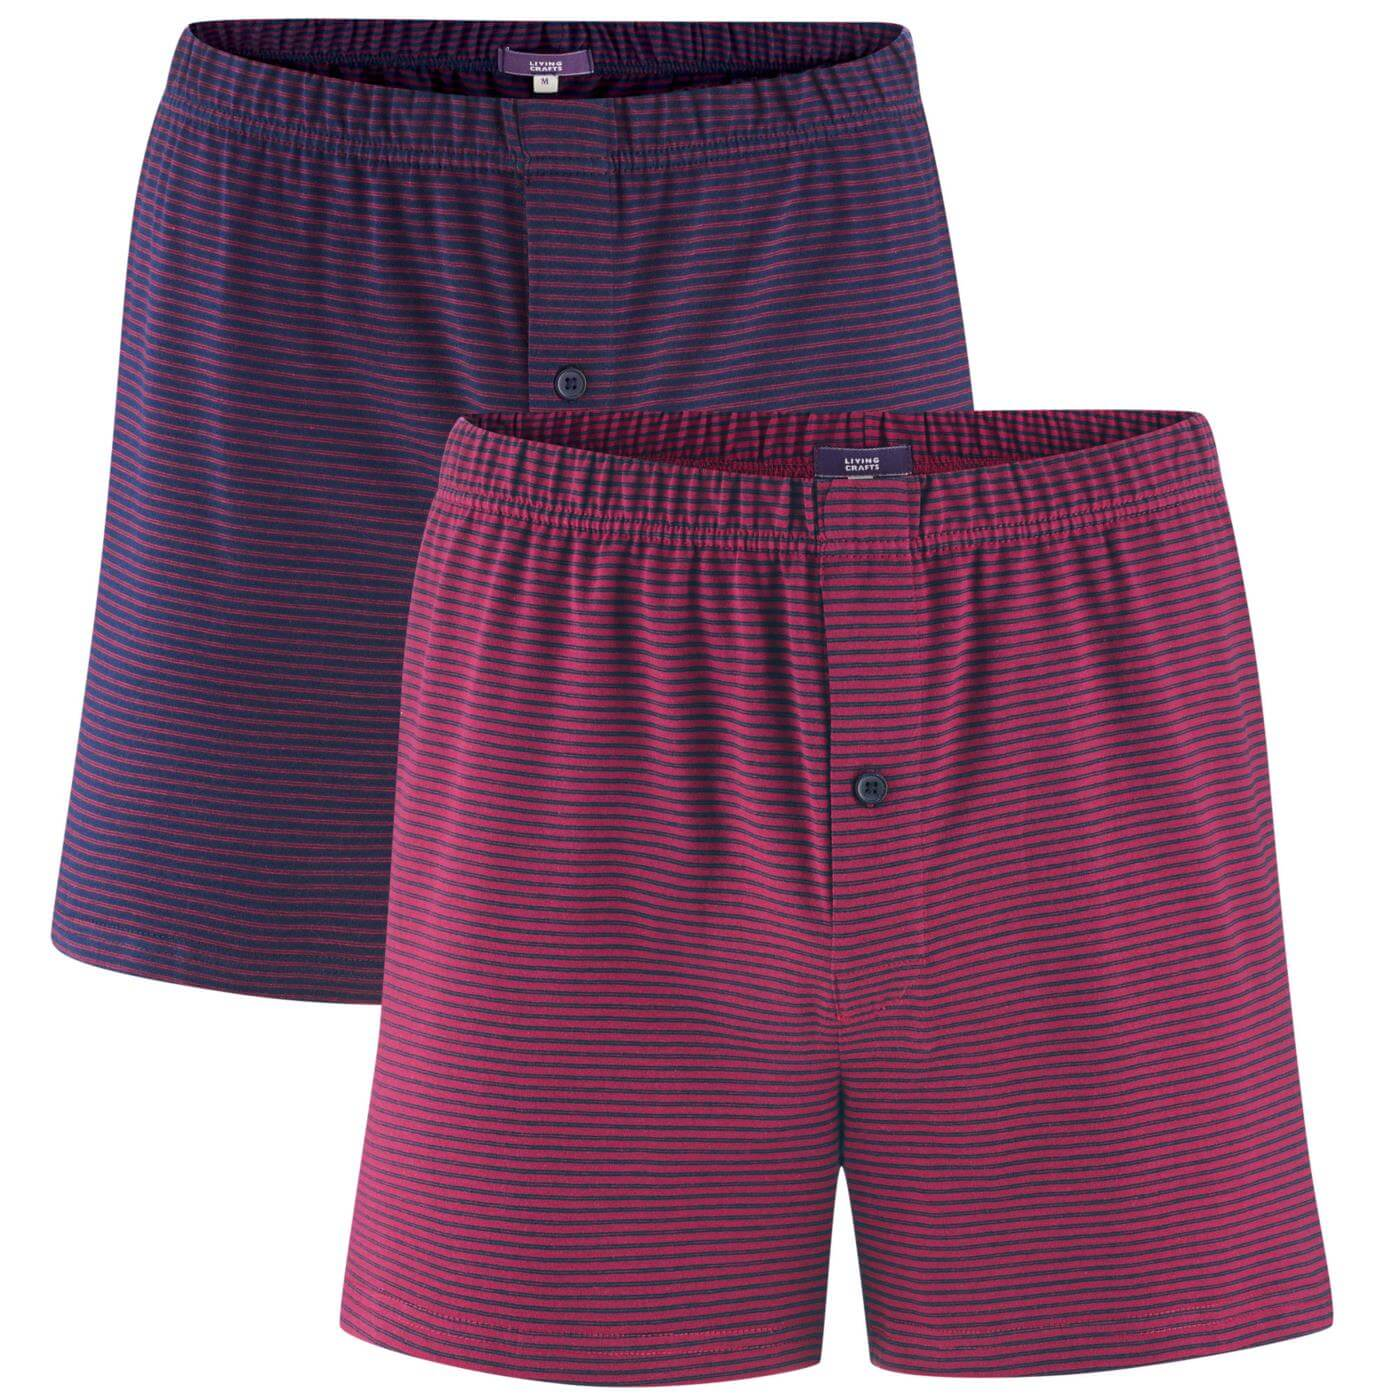 Boxer-Shorts, 2er-Pack